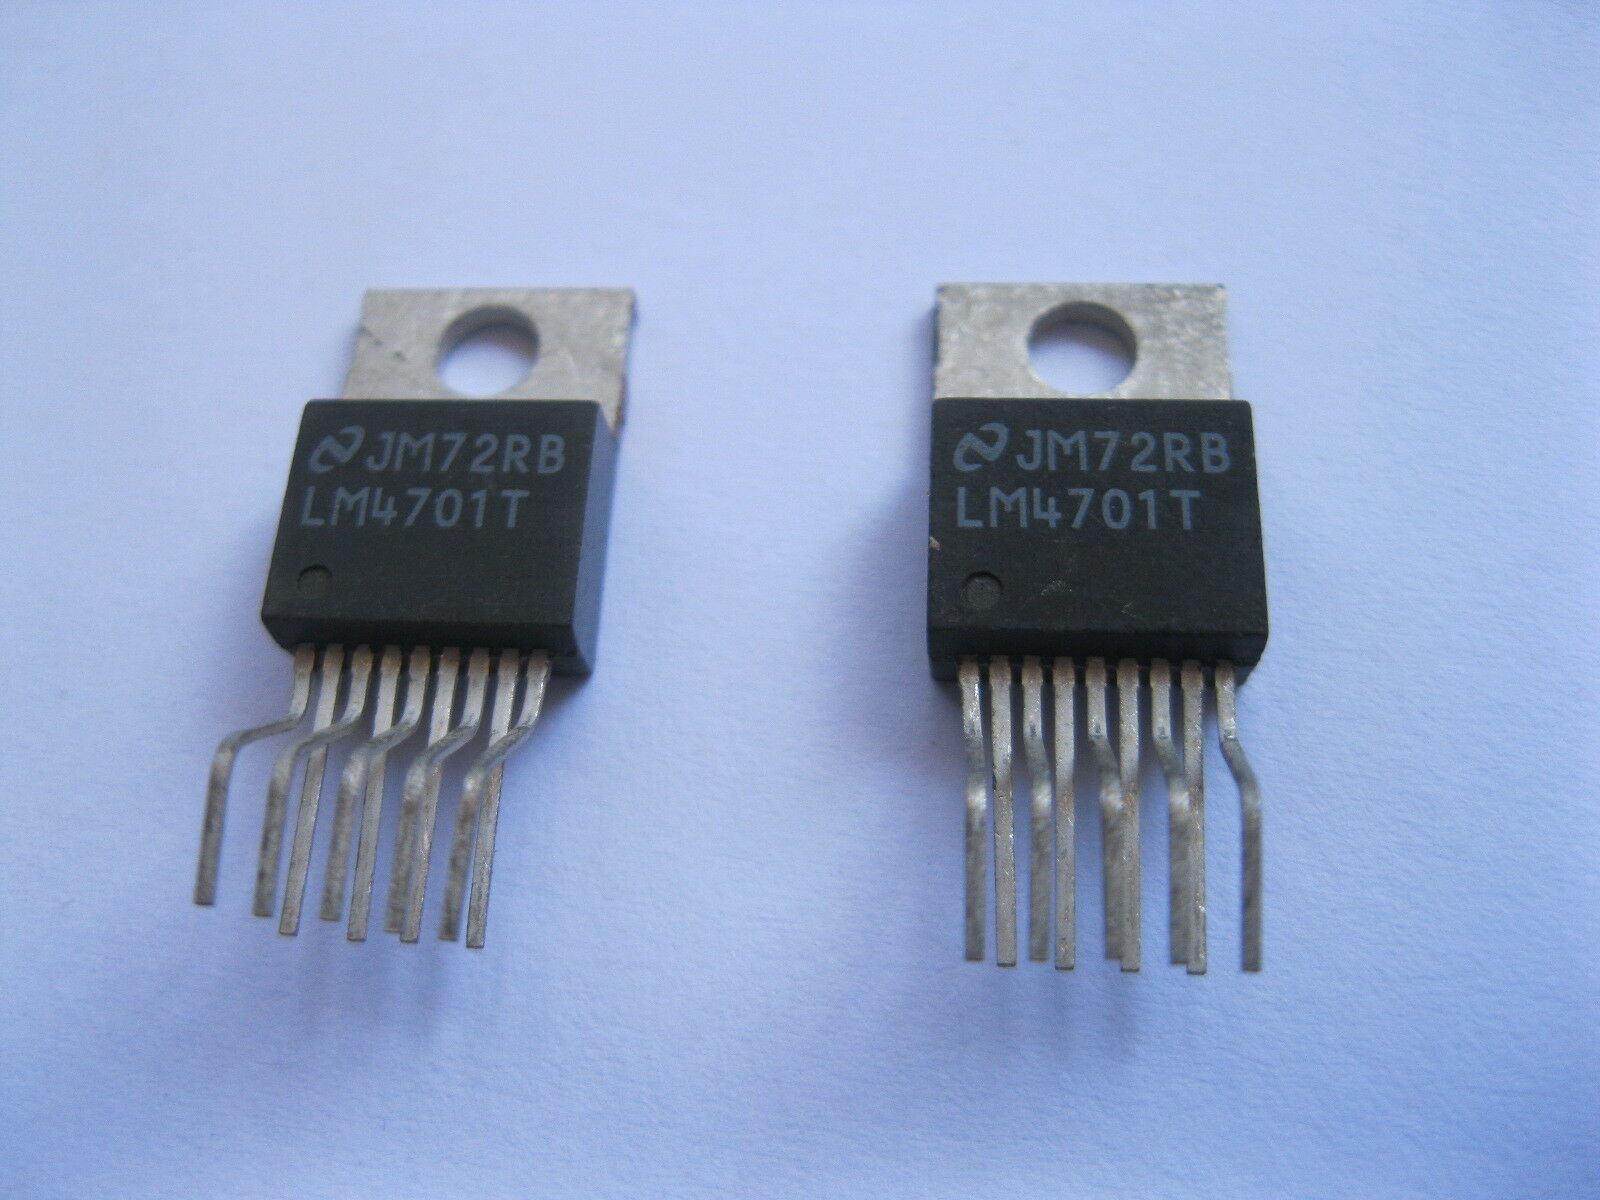 2 Pcs 30w Audio Power Amplifier Ic Chip Lm4701 Lm4701t Transistor 16 W By Lm383 1 Of 2free Shipping